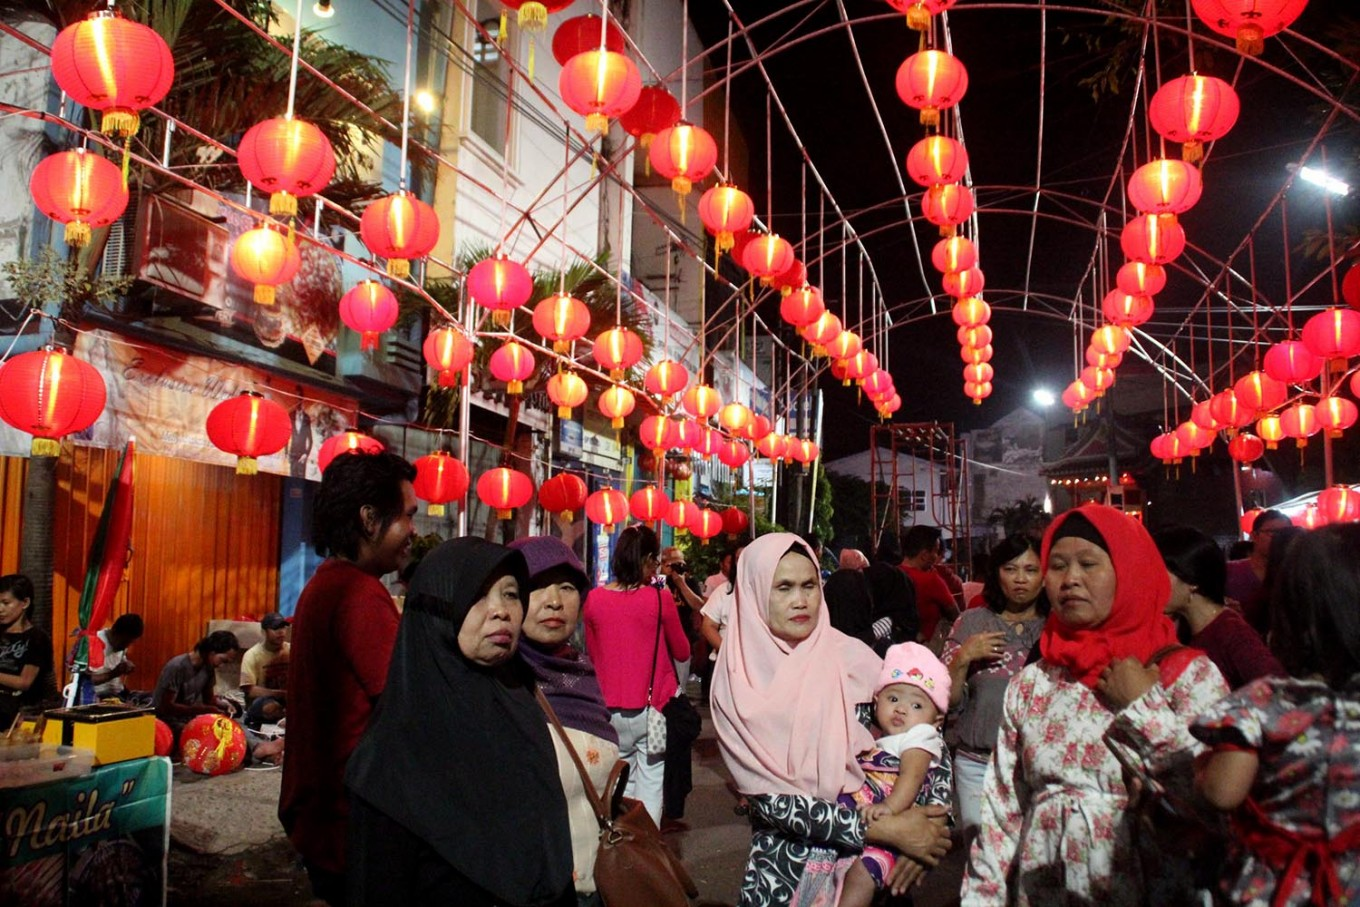 Thousands flock to Semarang night market to celebrate Chinese New Year